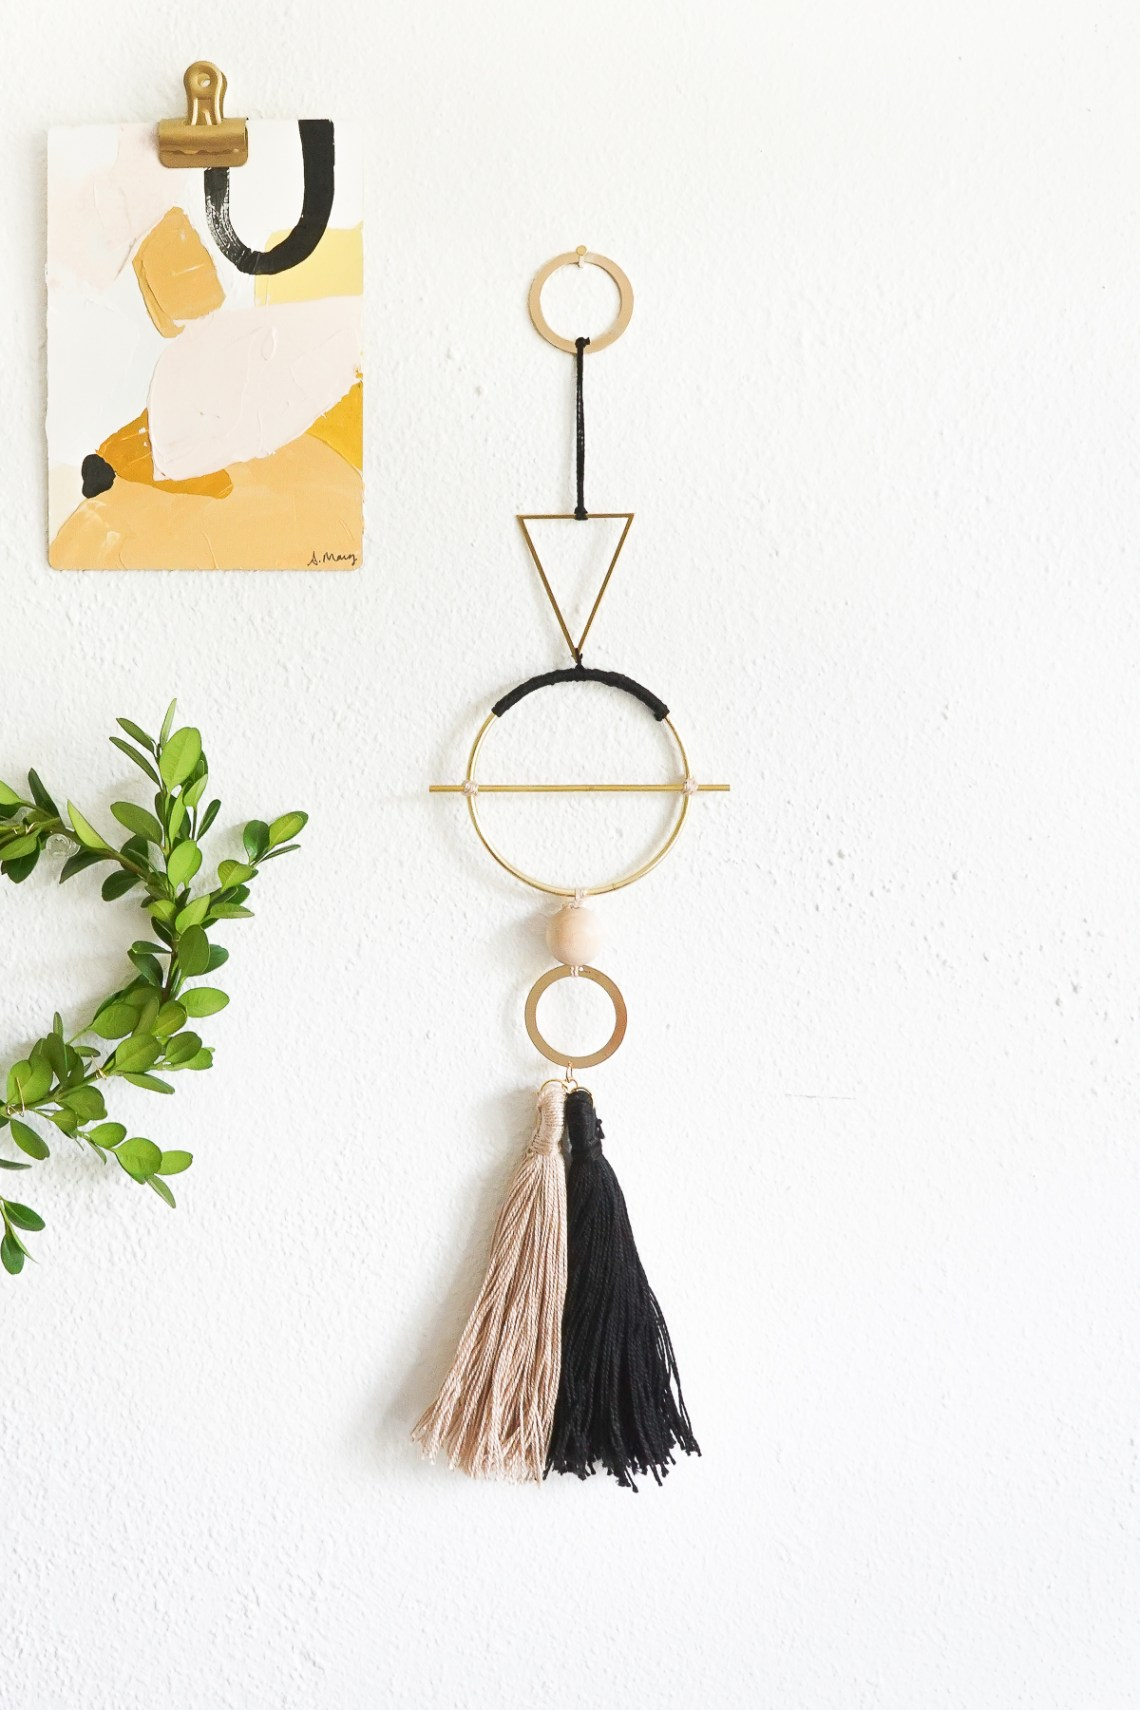 Add interest to your gallery wall with a geometric metal wall hanging. Get the tutorial link here!